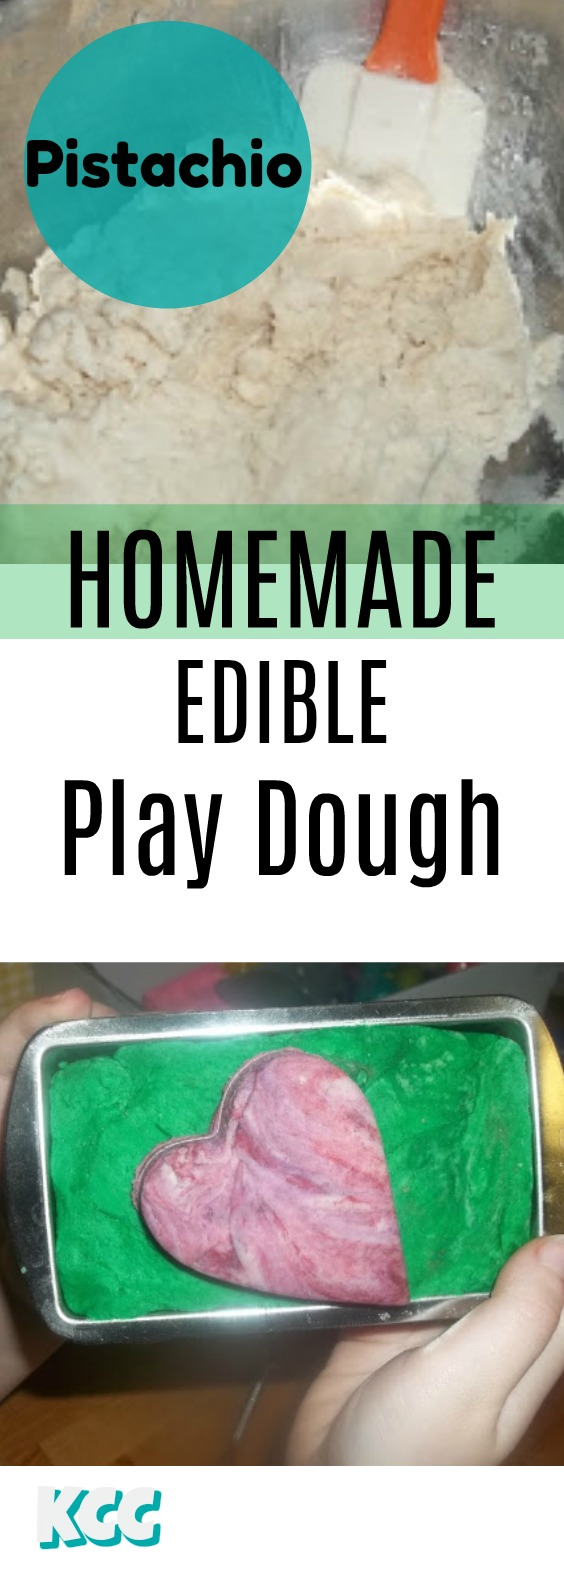 How to make homemade Play Dough Recipe Ideas (Edible) and Pistachio Experiment